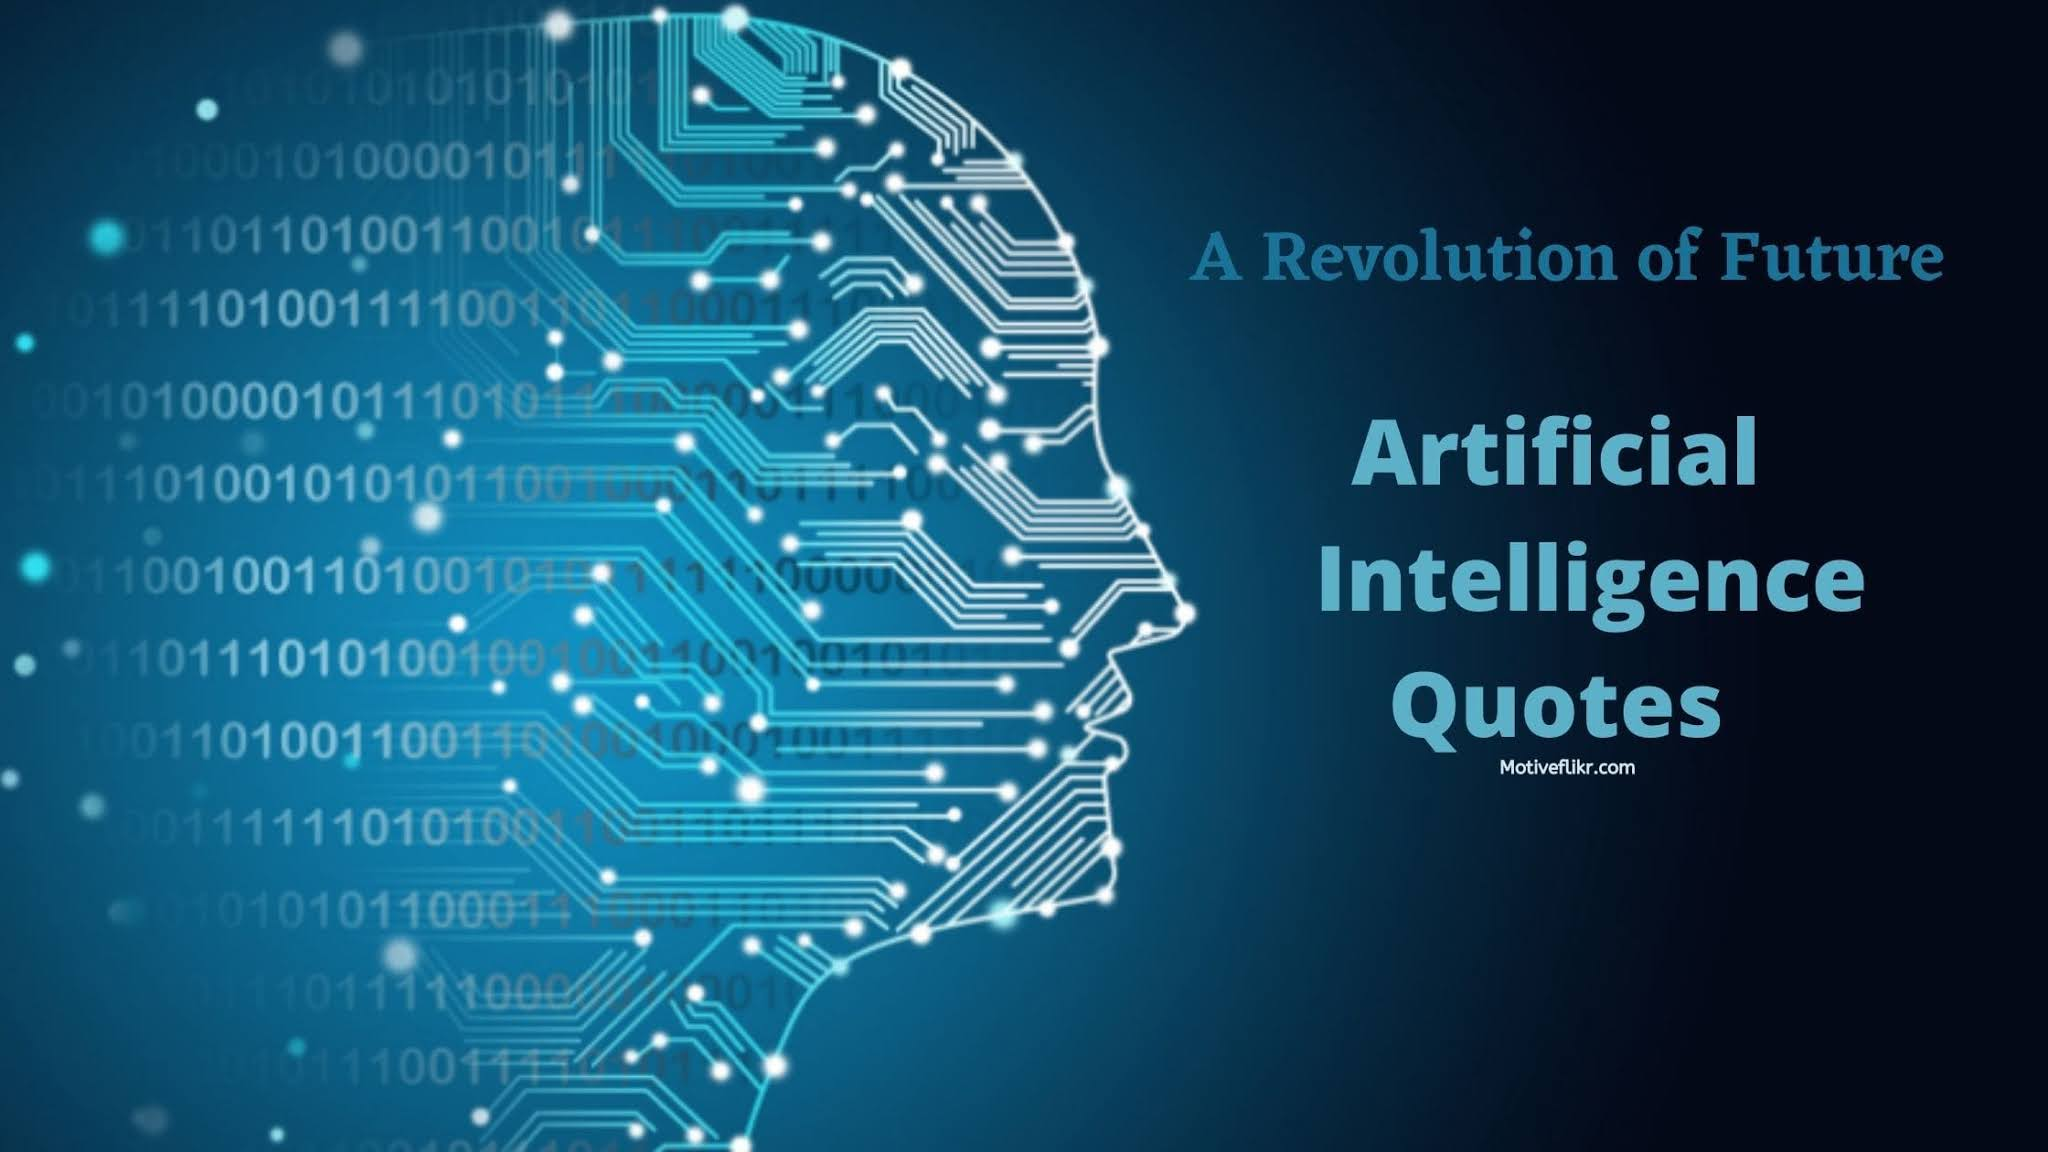 Artificial Intelligence quotes Representing revolution by AI Technology